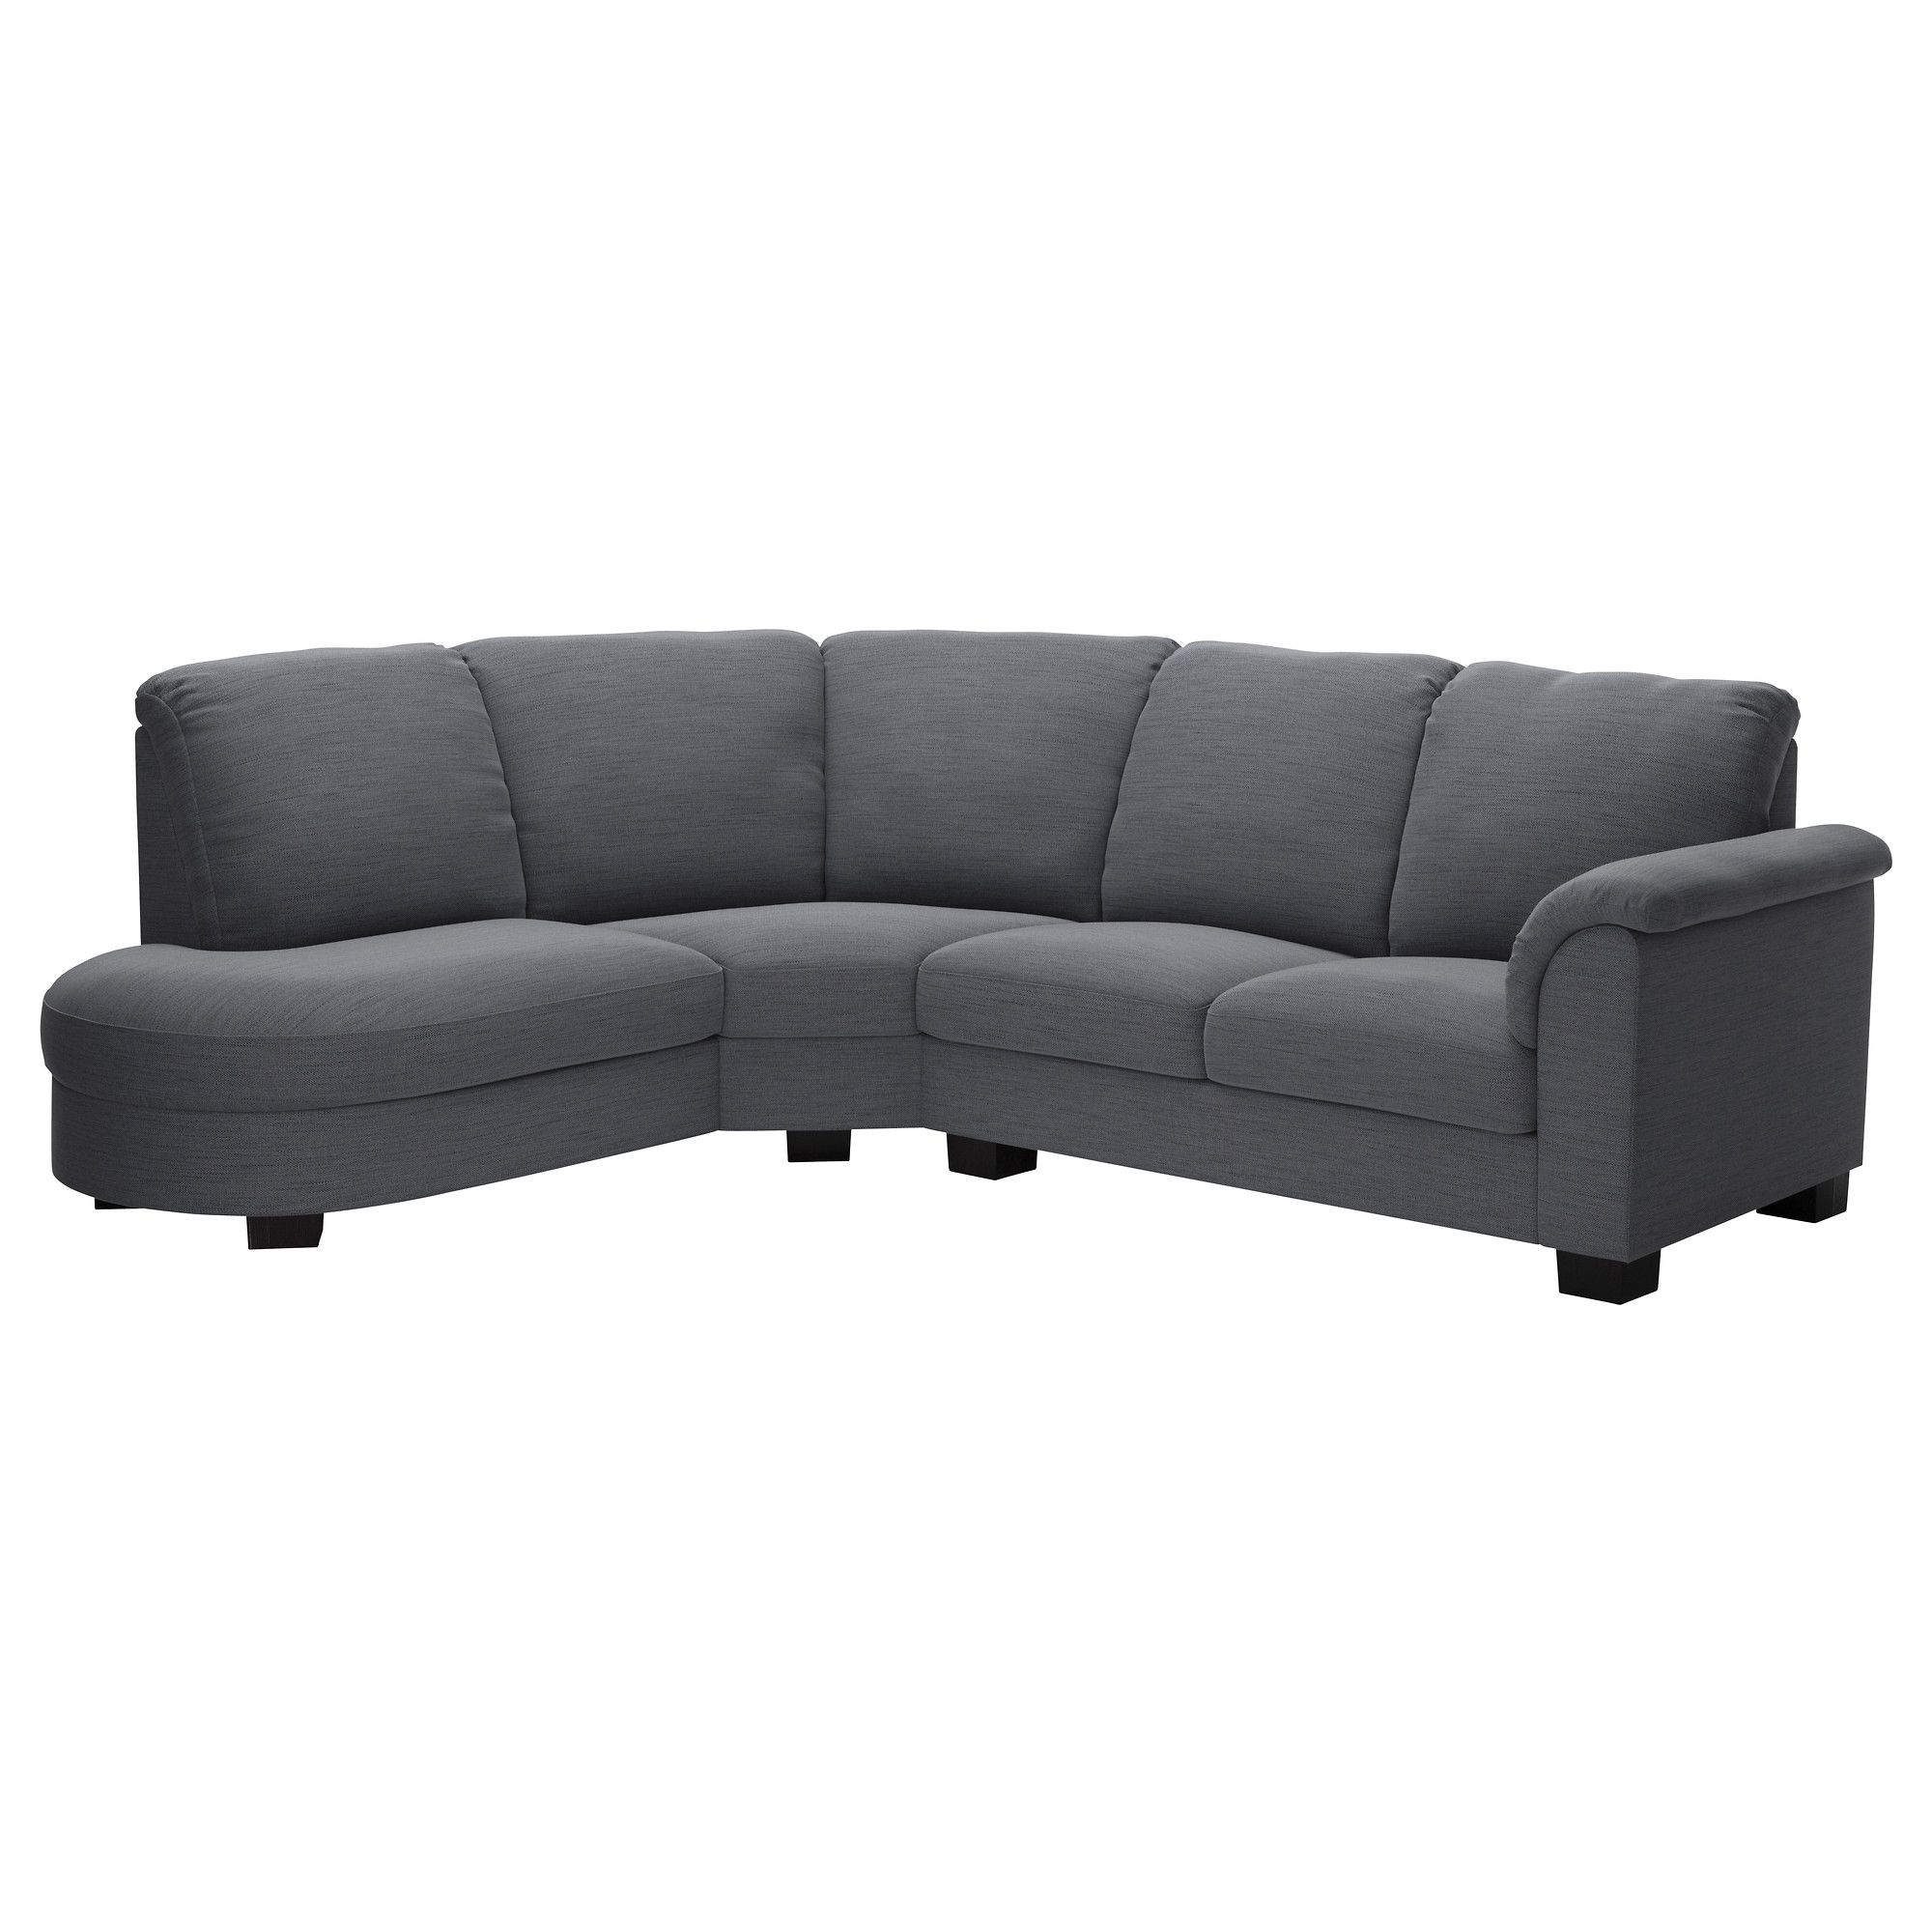 Furniture Home Furnishings Find Your Inspiration Corner Sofa Grey Corner Sofa Ikea